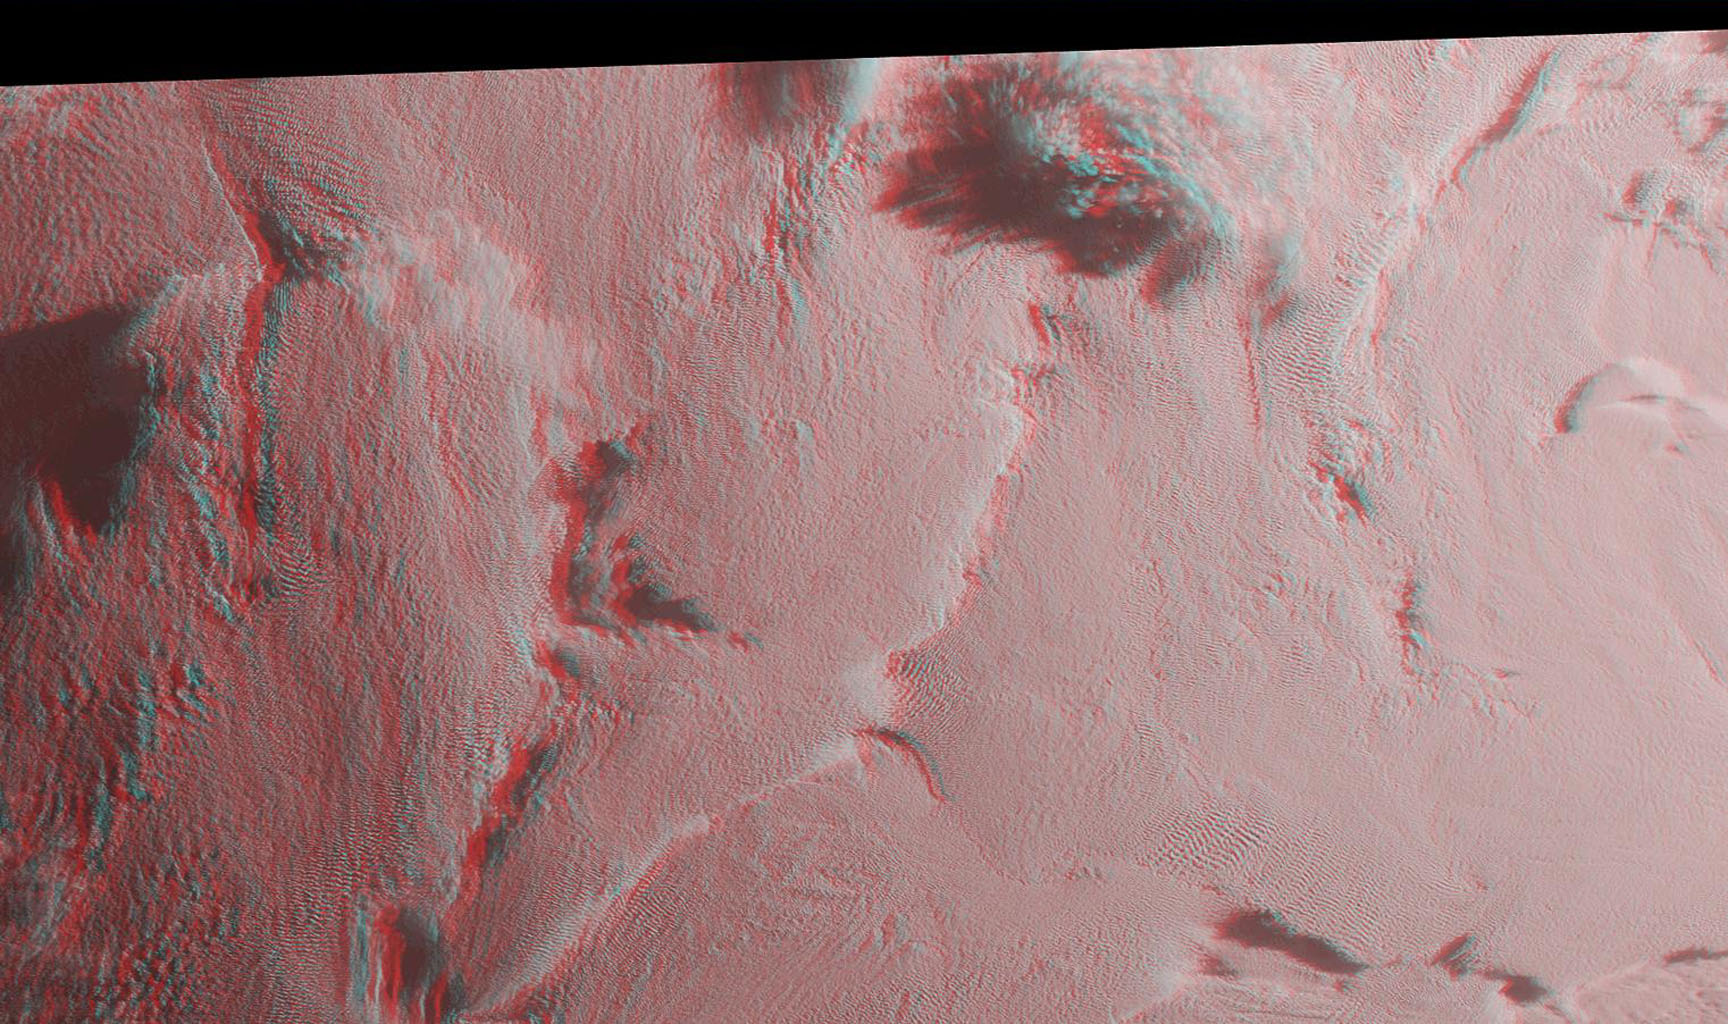 Stratus clouds are common in the Arctic during the summer months, and are important modulators of the arctic climate as seen in this anaglyph from the MISR instrument aboard NASA's Terra spacecraft. 3D glasses are necessary to view this image.